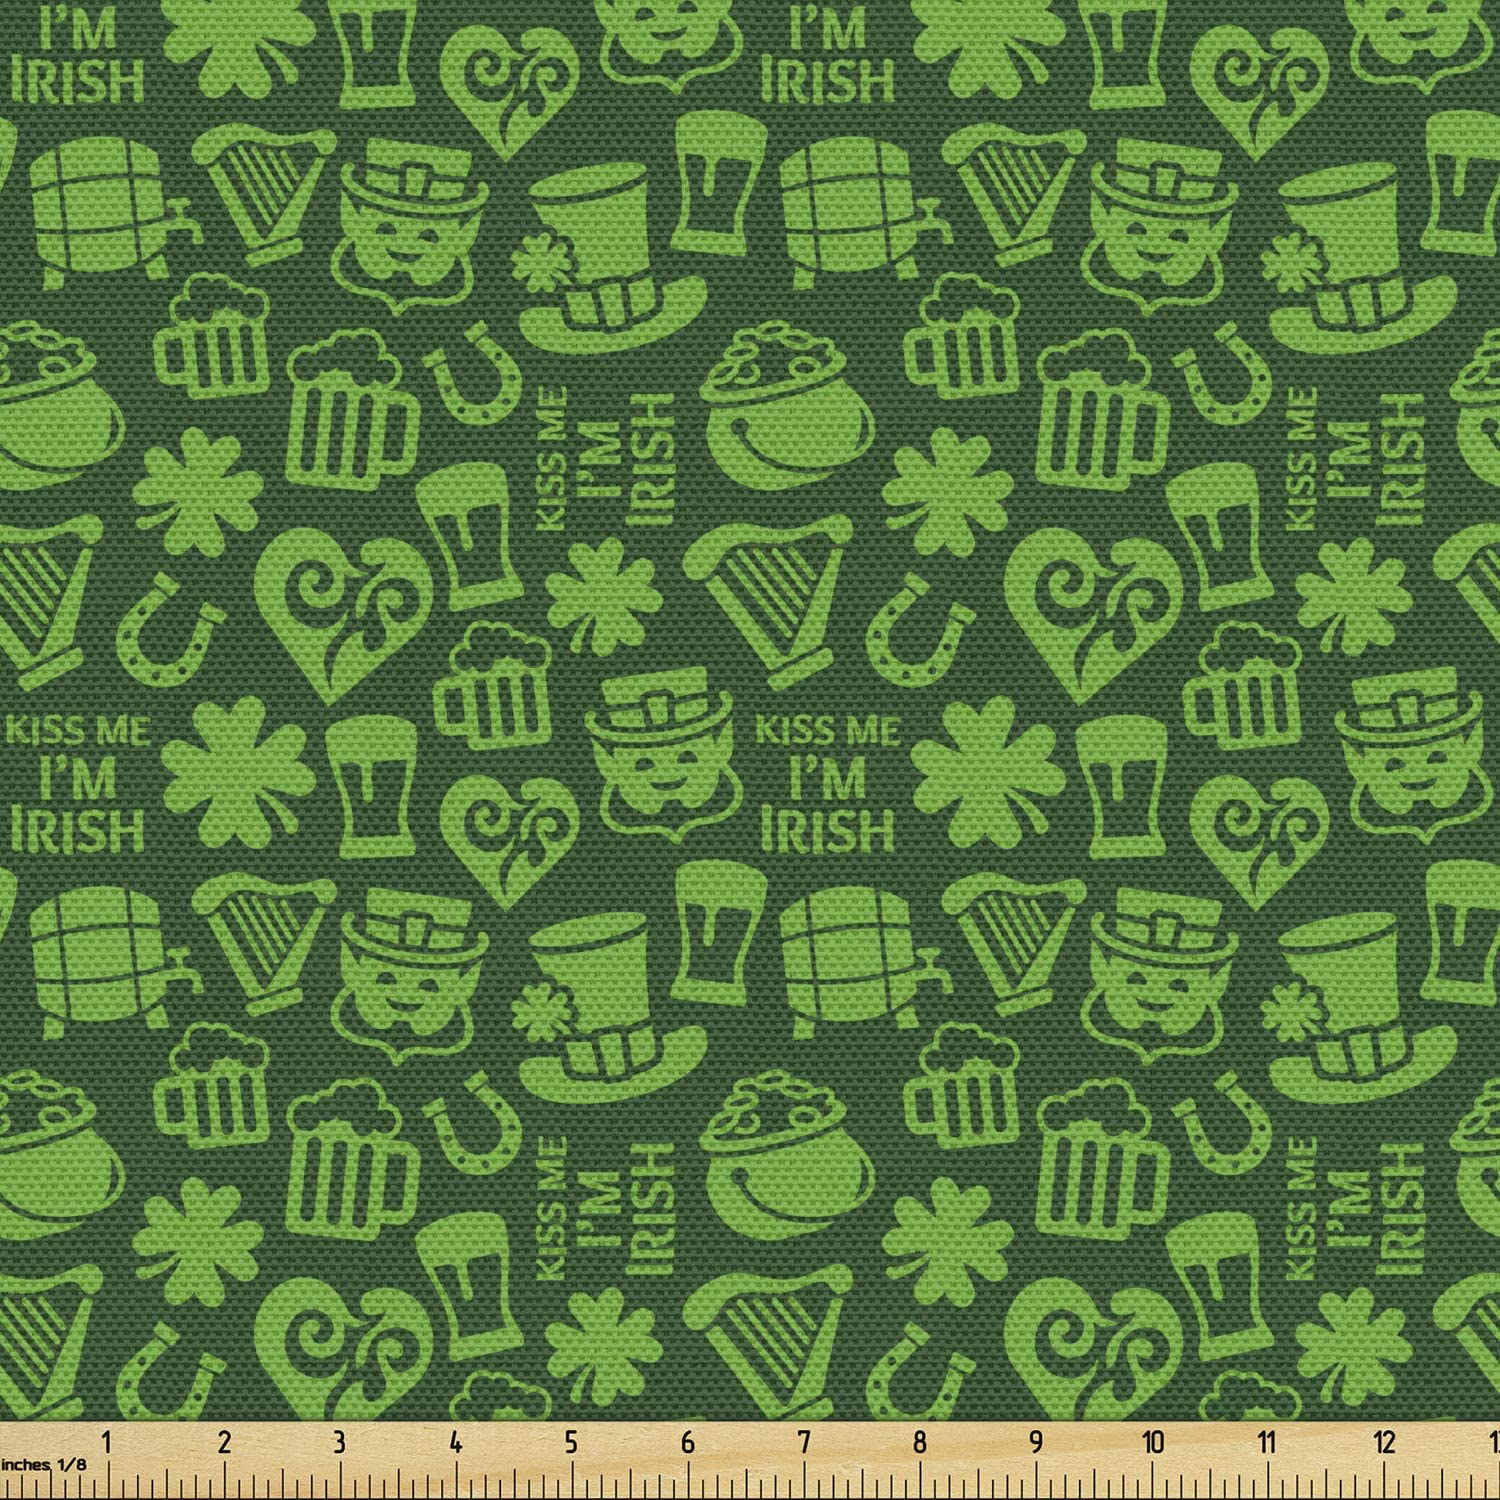 Ambesonne Irish Fabric by The Yard, Kiss Me I'm Irish Humorous Phrase with Ale Shamrocks Hats Traditional, Decorative Fabric for Upholstery and Home Accents, 1 Yard, Lime Green